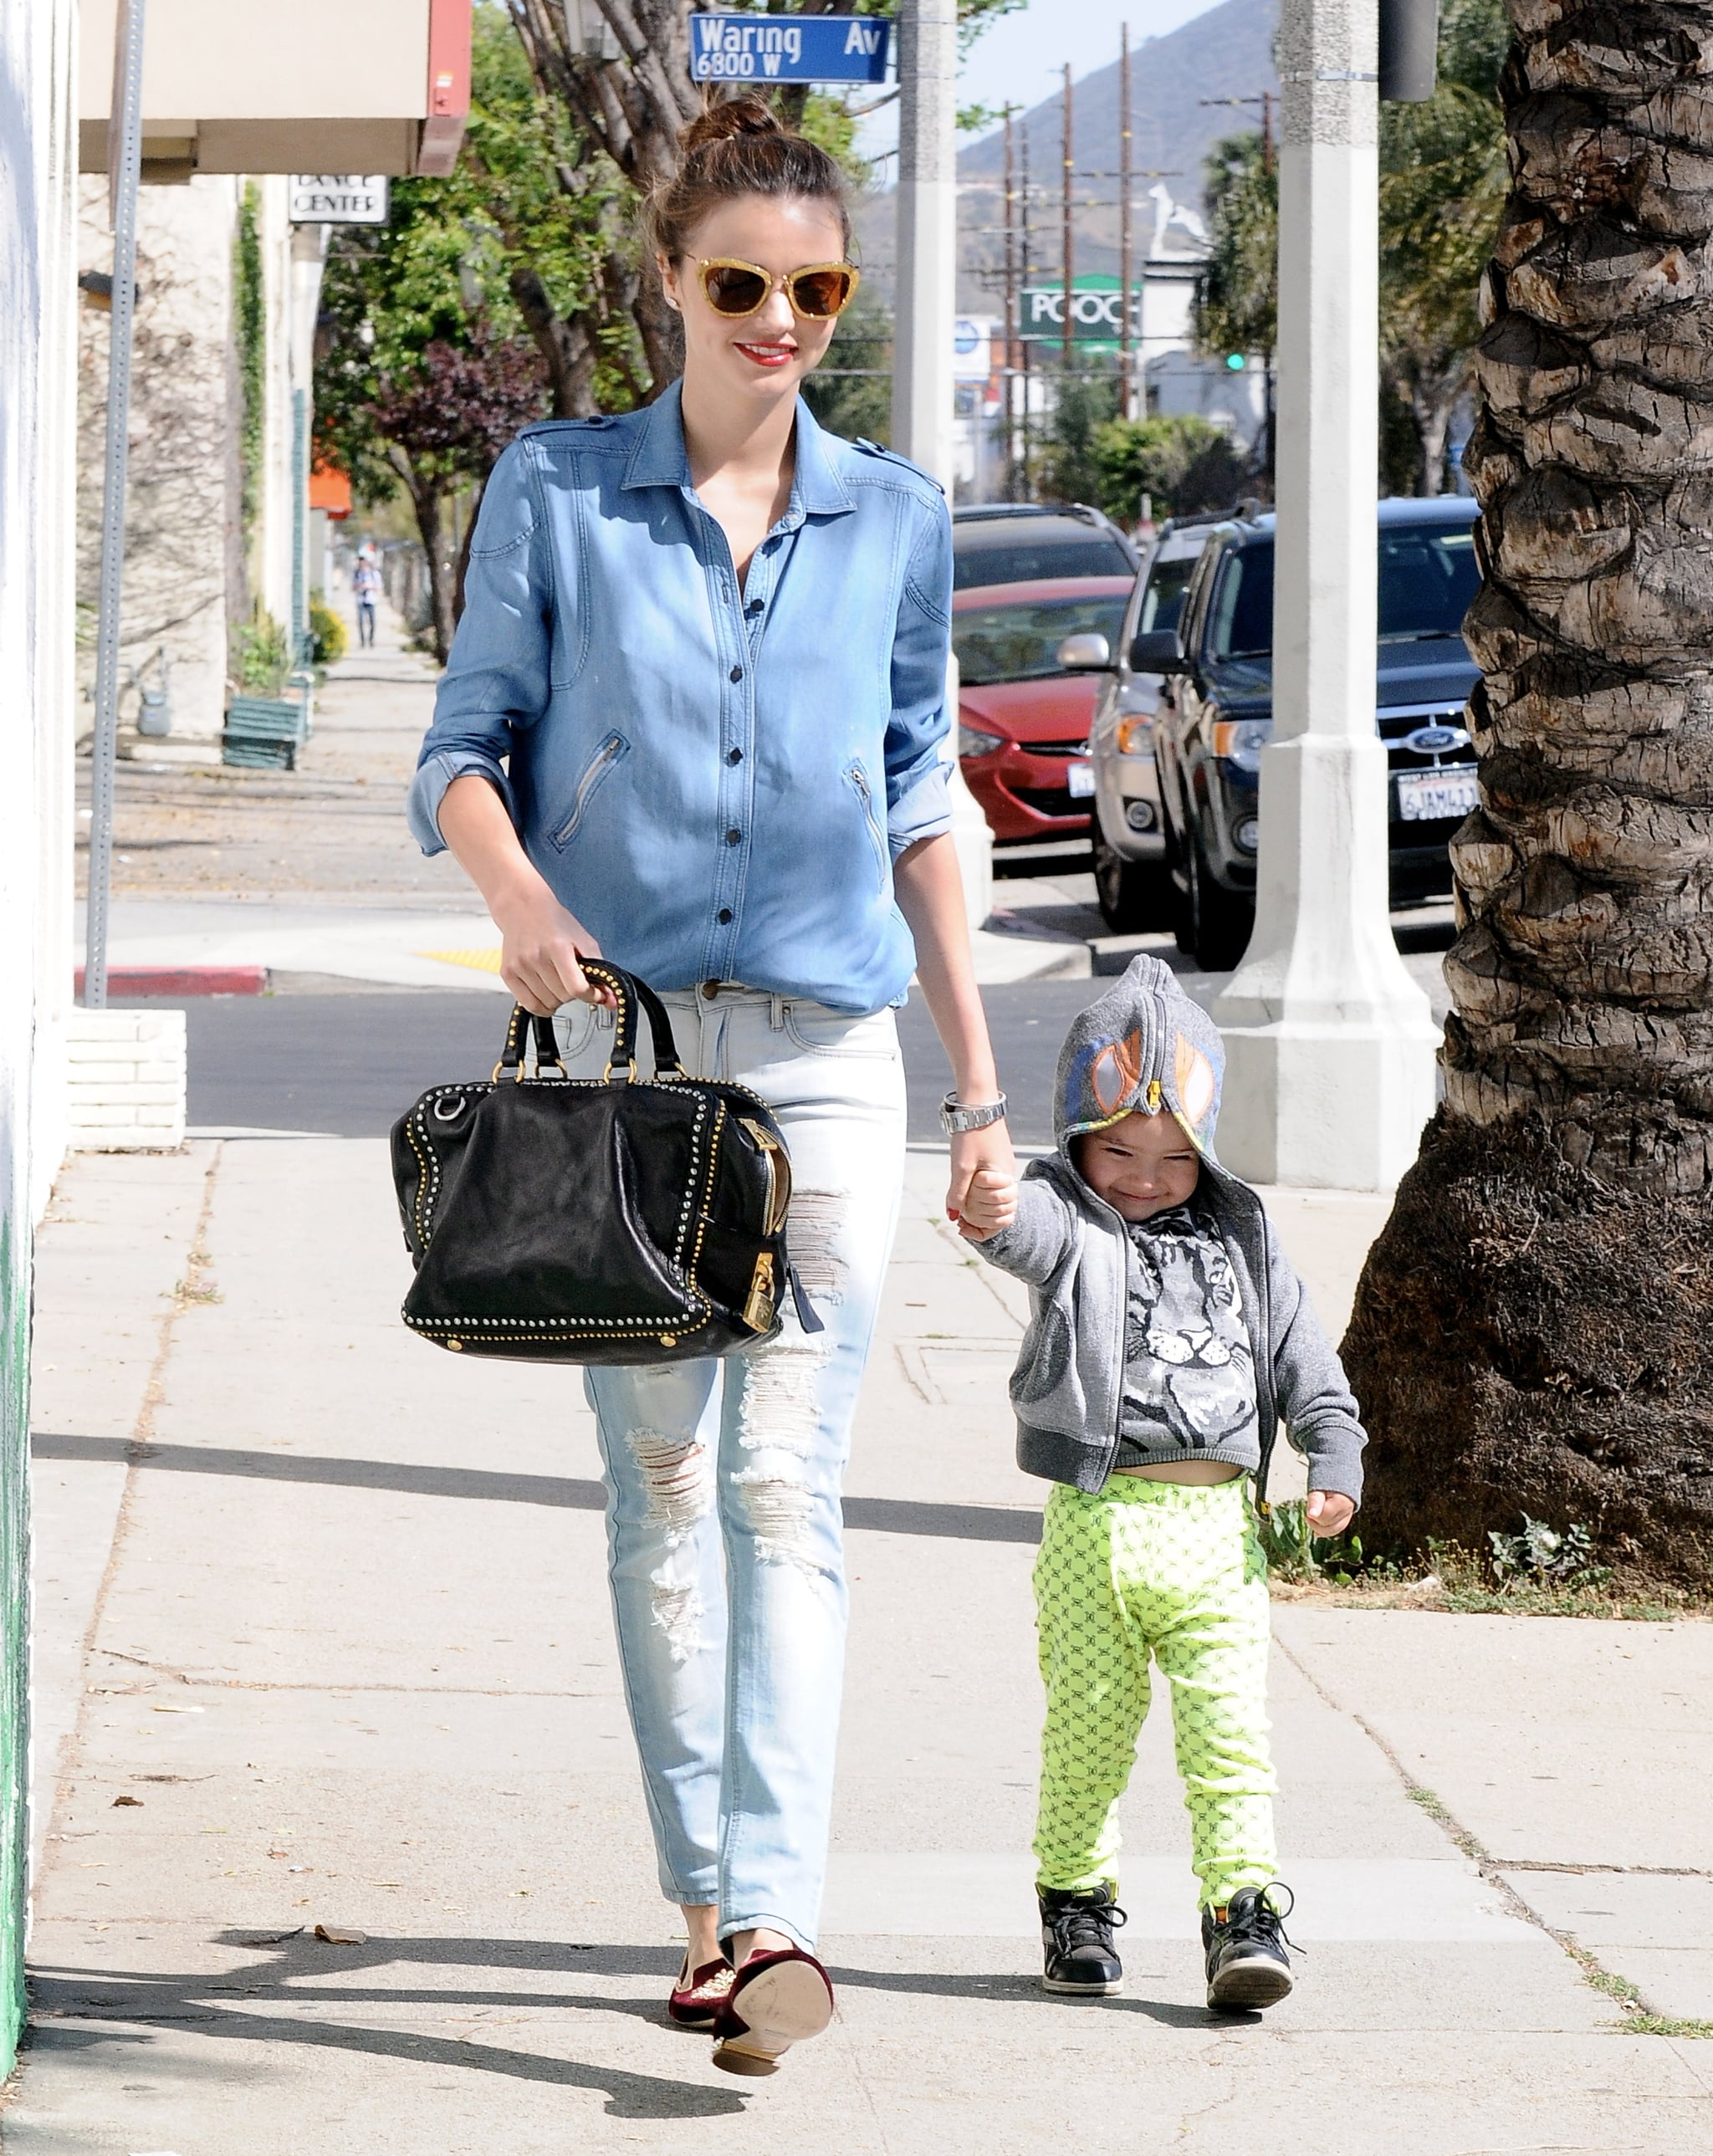 Miranda Kerr doubled up on denim and added flats for a casual everyday look.